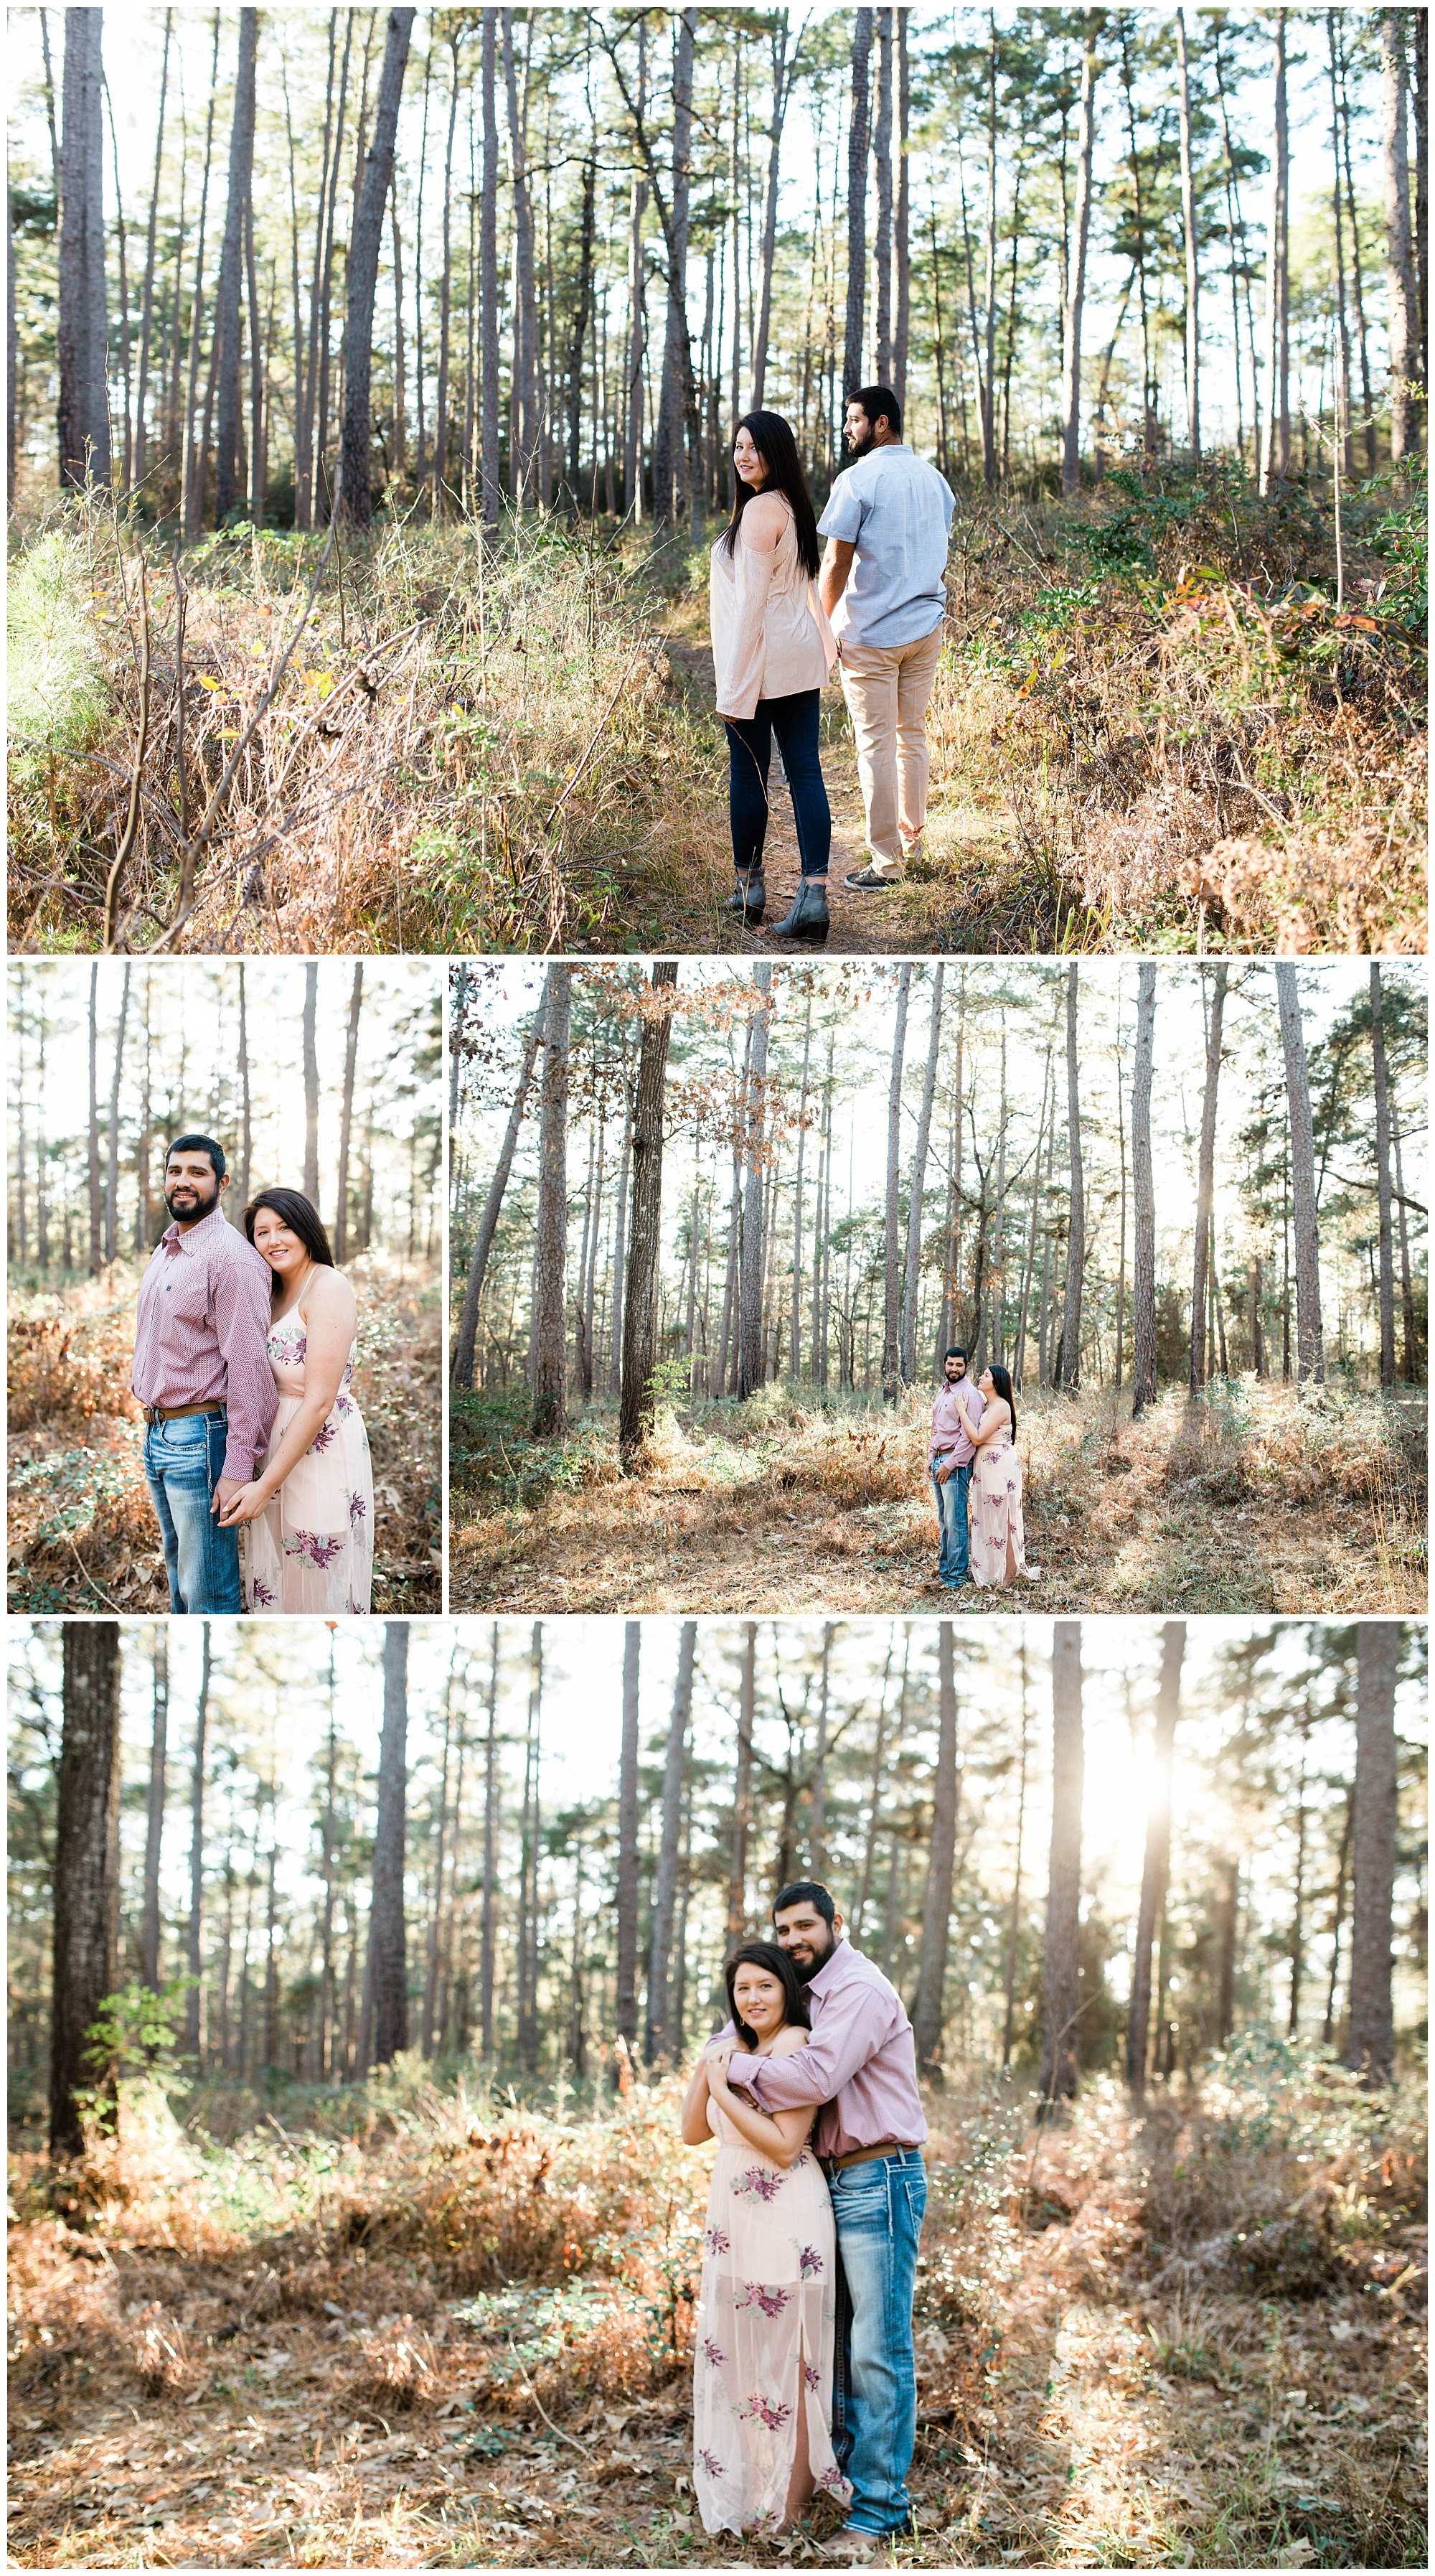 Sam_Houston_National_Forest_Engagement_Session_Kristina_Ross_Photography_0005.jpg